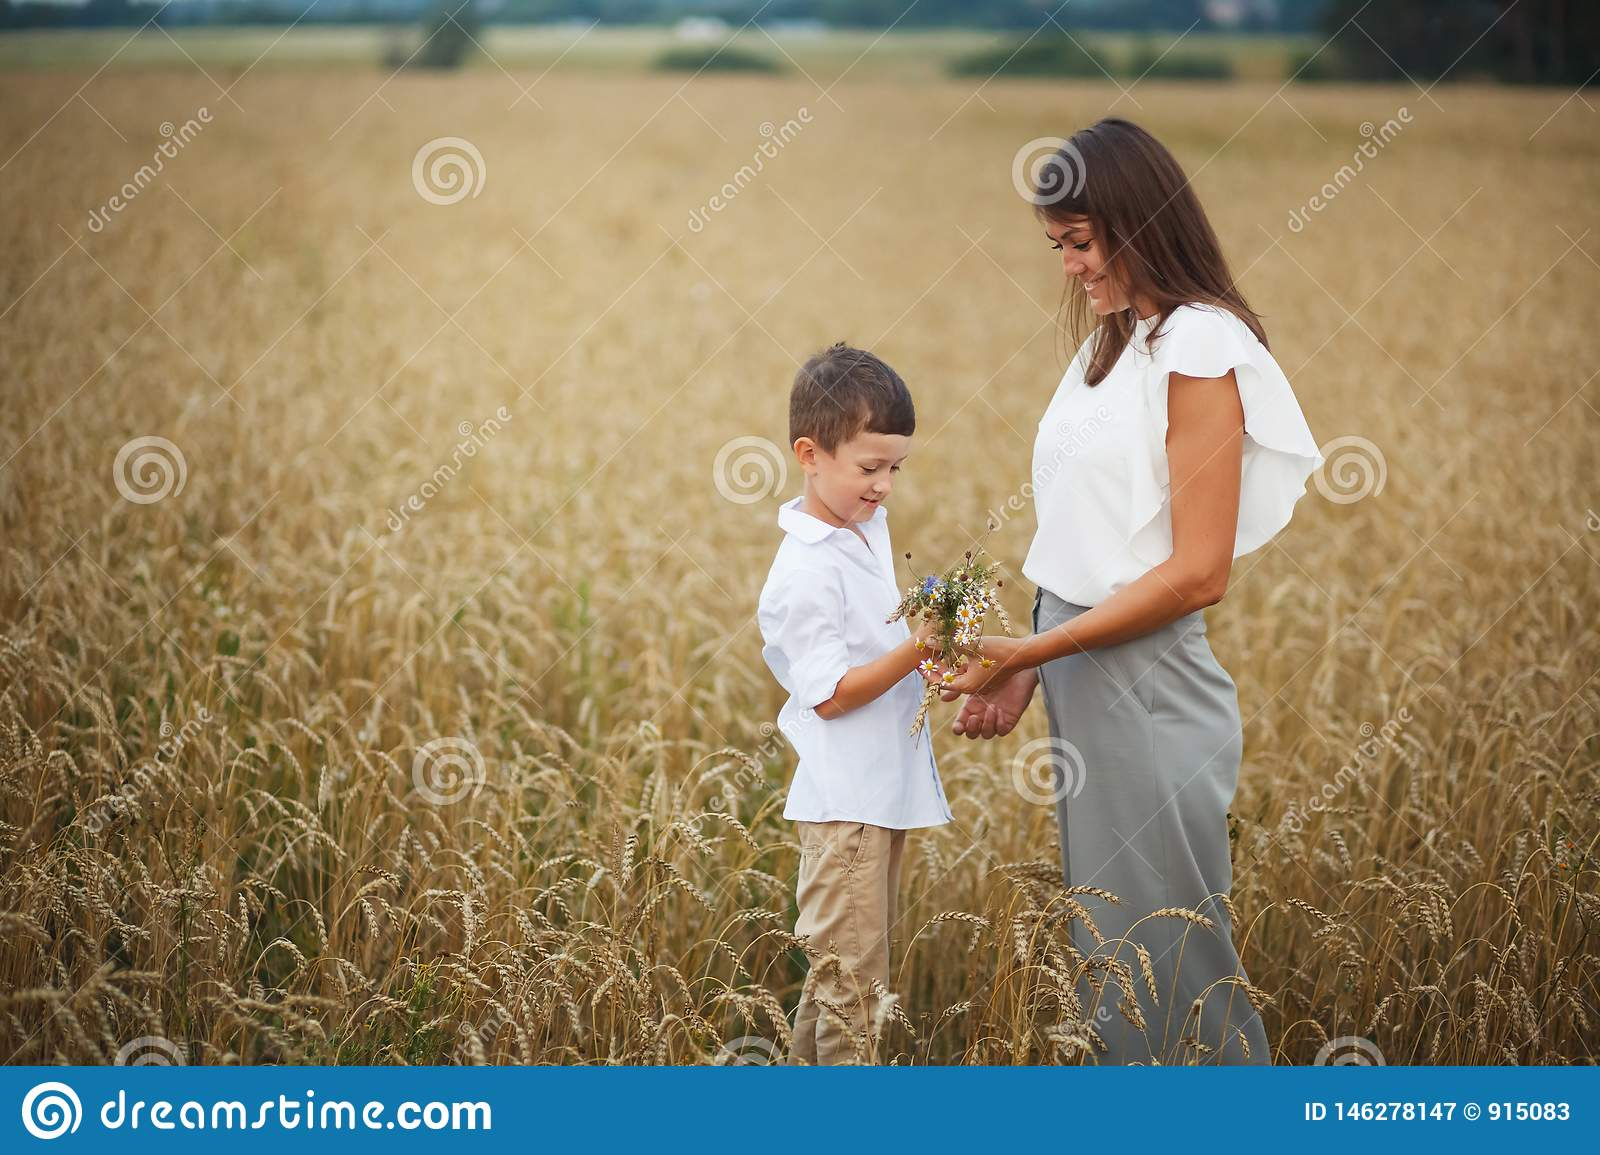 Mother with son smiling holding hands and embracing in a field in summer. The concept of maternal love and tenderness, the